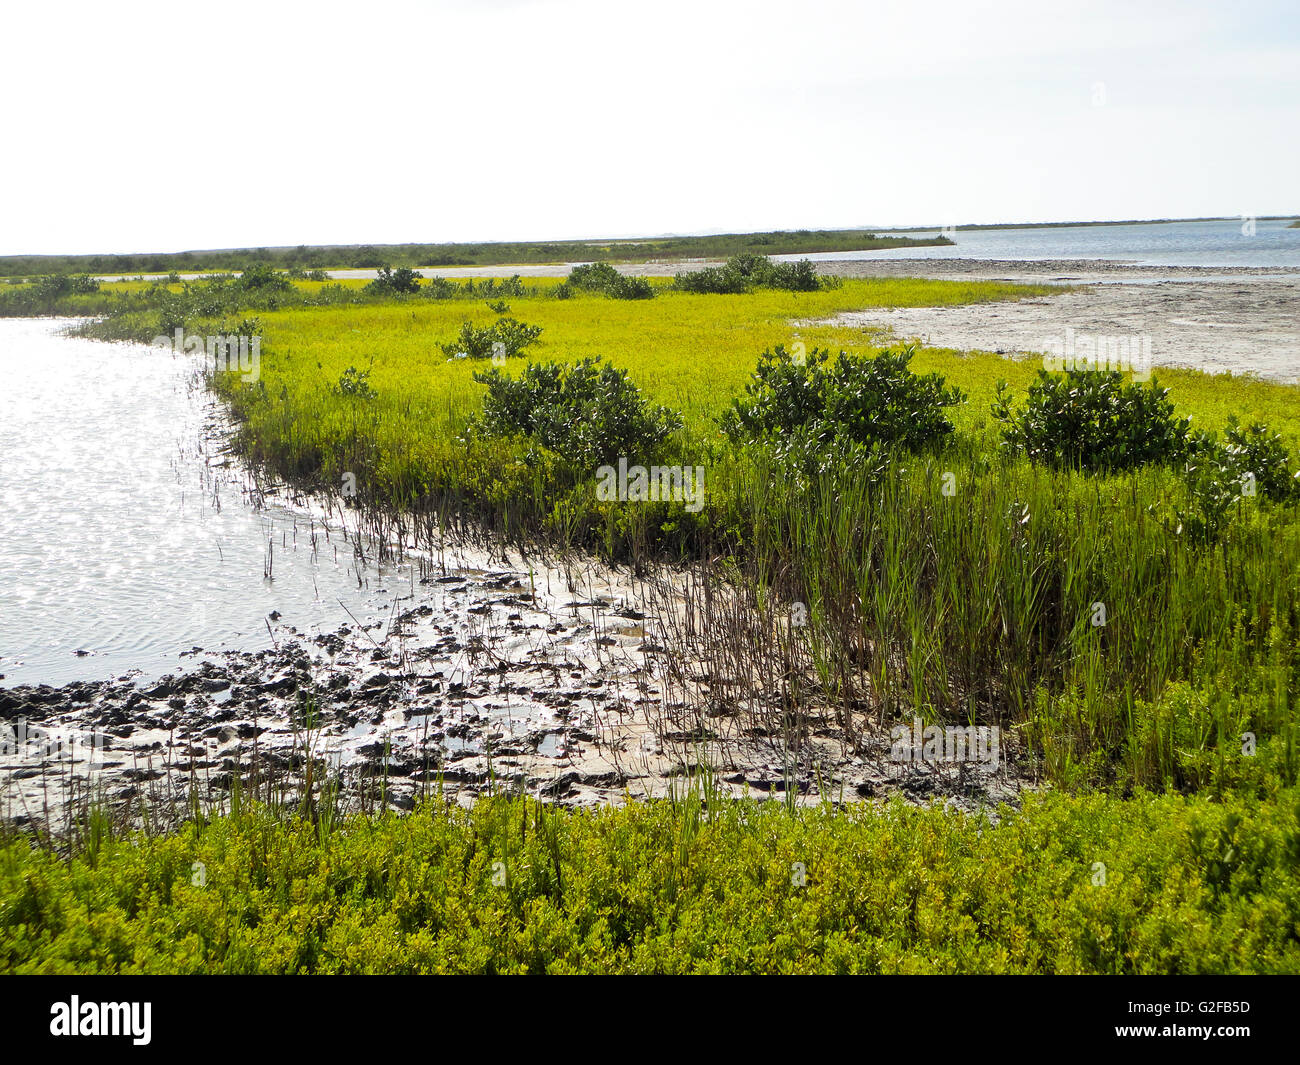 Mustang Island Natural Preserve, Corpis Christie, Texas - Stock Image